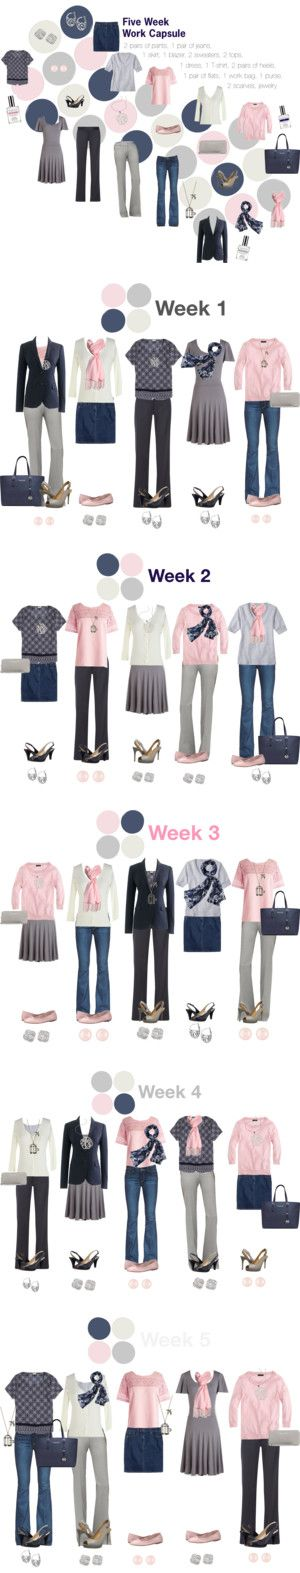 Work Capsule Wardrobe: Pink, Grey & Navy by kristin727 on Polyvore featuring STELLA McCARTNEY, J.Crew, Naturalizer, Nine West, Paige Denim, Henri Bendel, MINKPINK, Michael Kors, Merona and Bloch